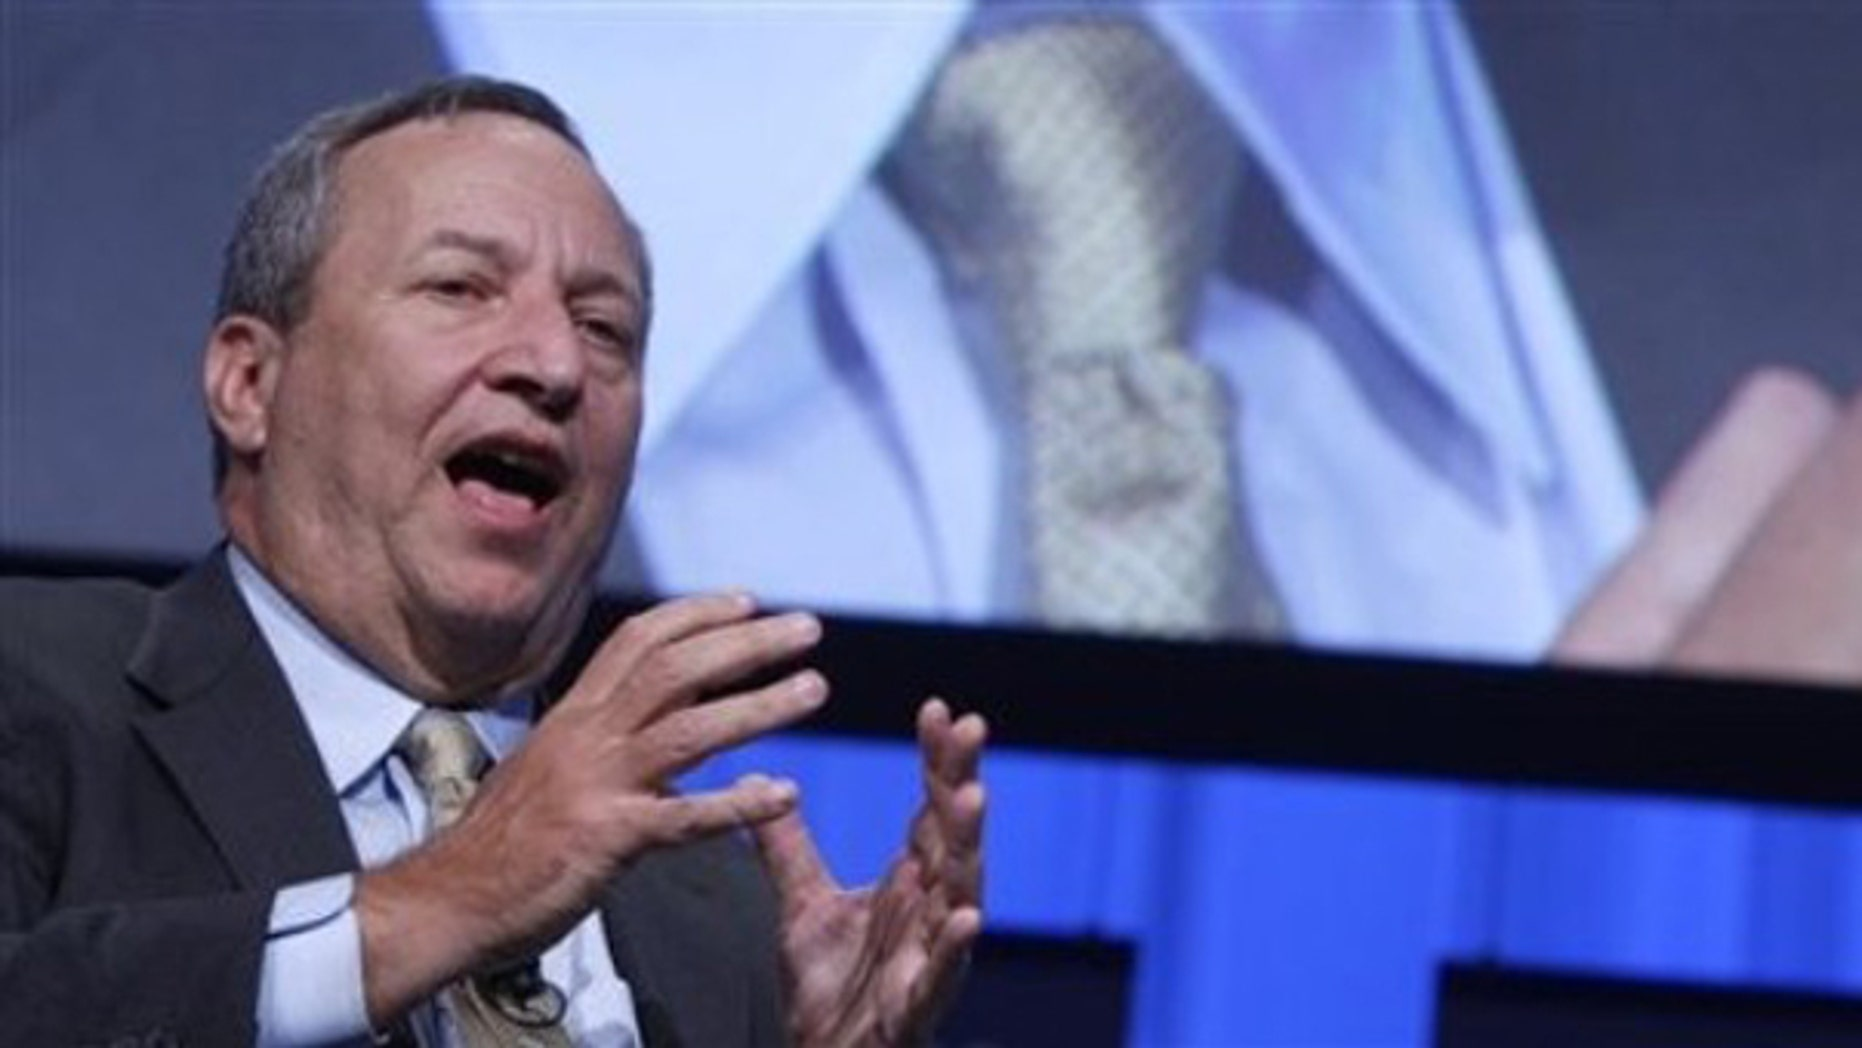 Larry Summers, director of the National Economic Council, speaks during a session 'The U.S. Economic Outlook' at the World Economic Forum in Davos, Switzerland on Jan. 29. (AP Photo)